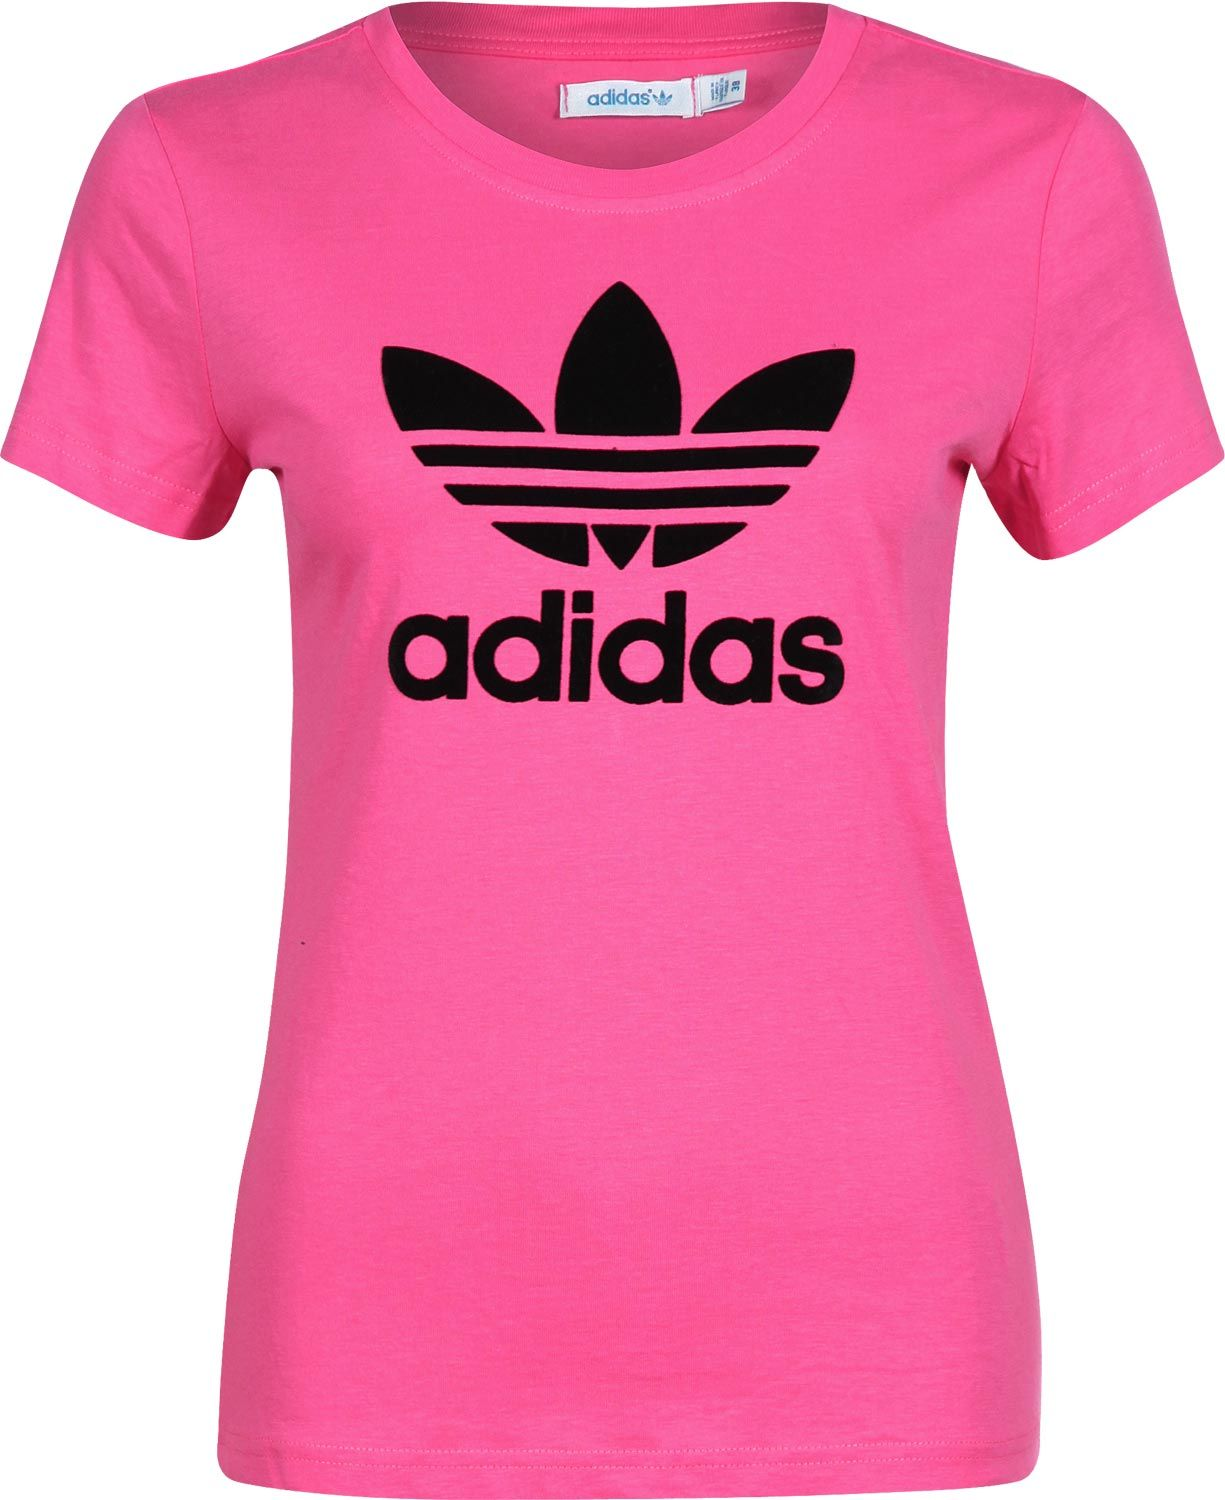 befc0a1f023a0e pink and black adidas tee